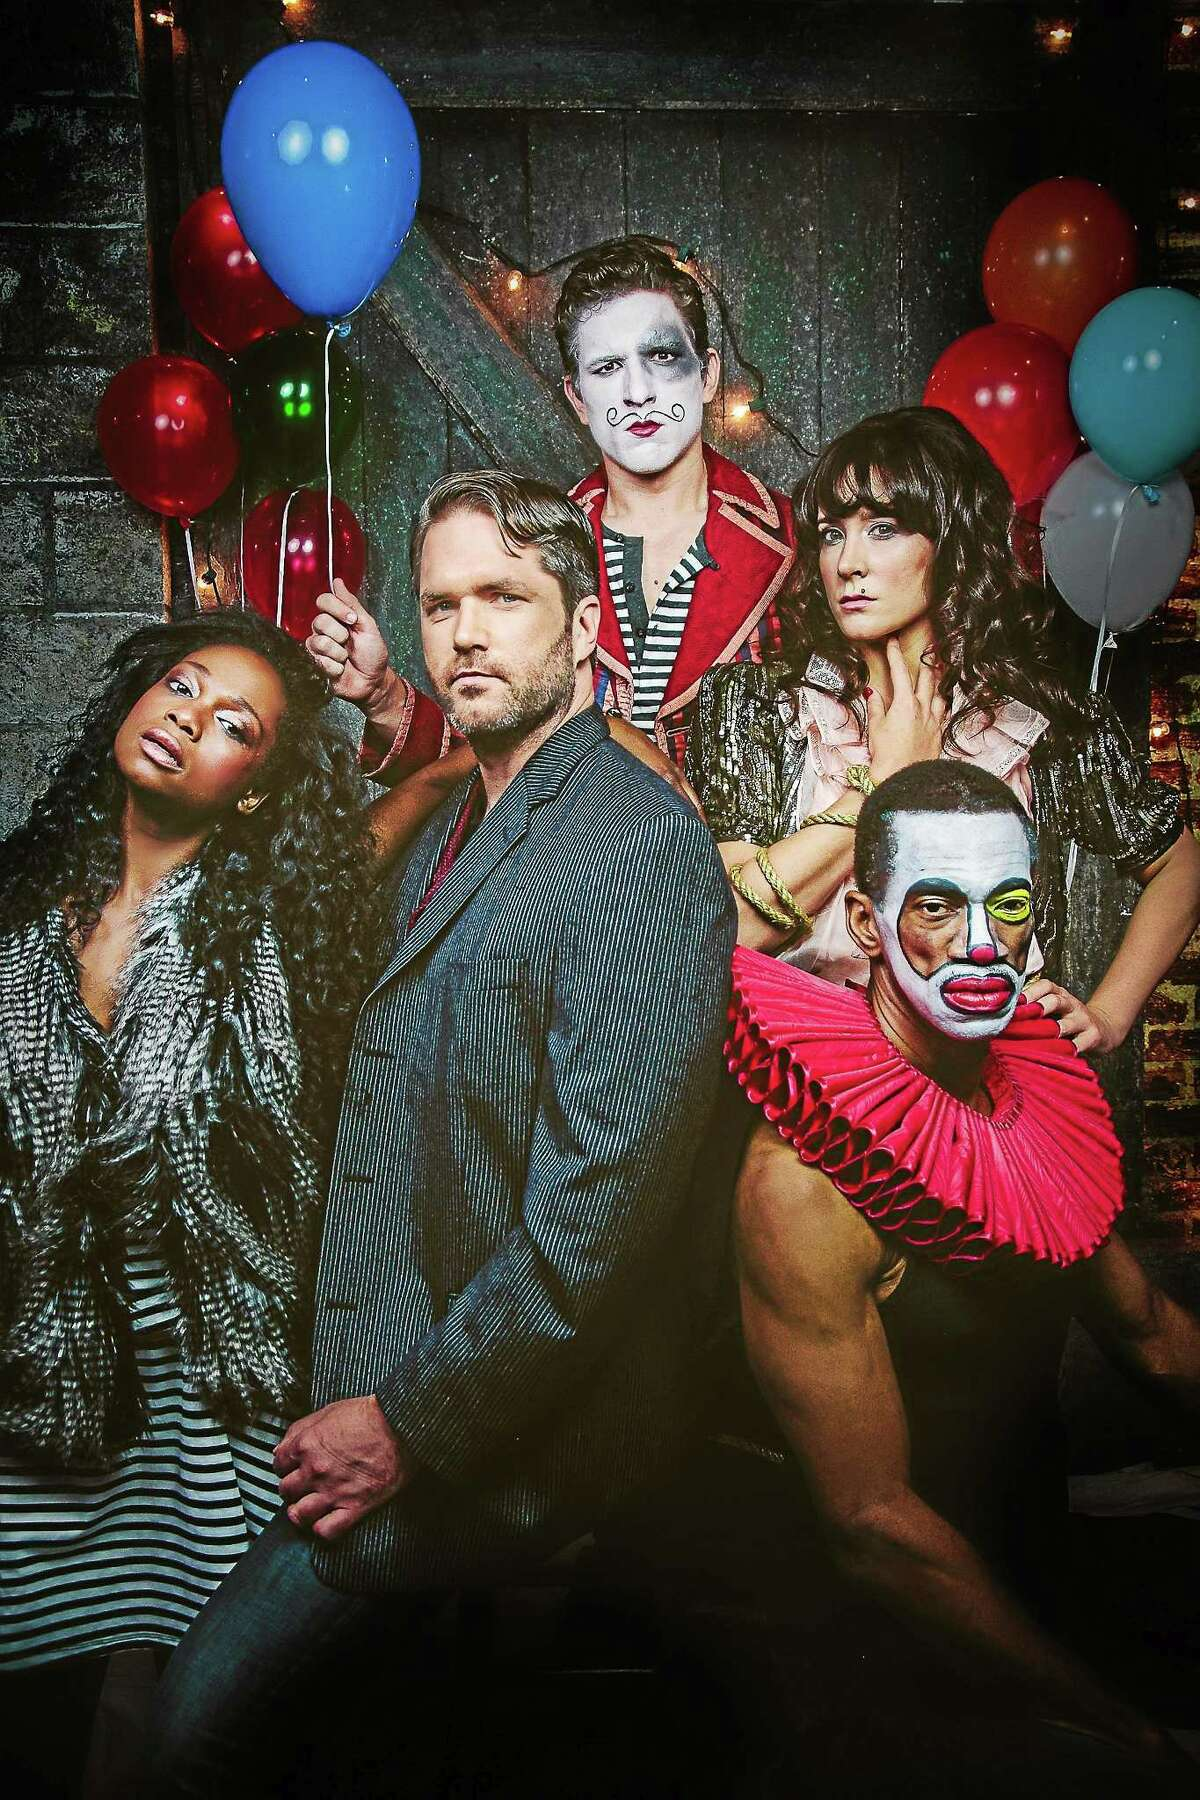 """Photo by EMMA The cast of """"The Circus in Winter,"""" from left, includes Shannon Antalan, James Penca, Dee Roscioli, Charles Gray and Aaron Ramey."""